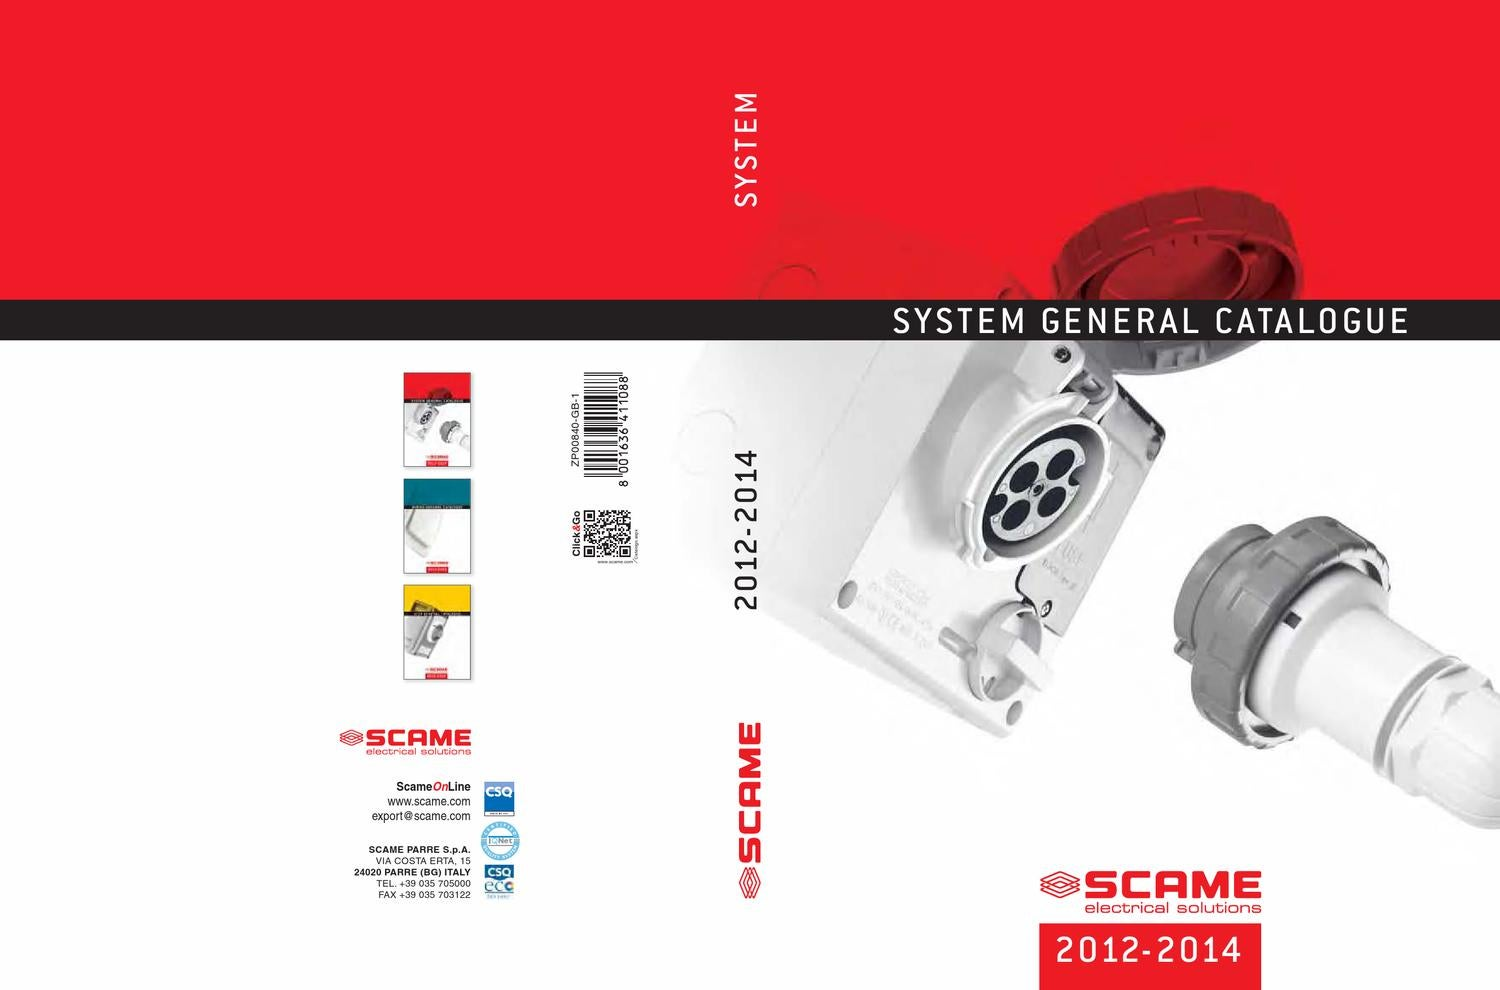 General Catalogue 2012 2014 System English By Scame Parre Spa For The Selftapping Fuse Holder Use With 12v Led Power Issuu